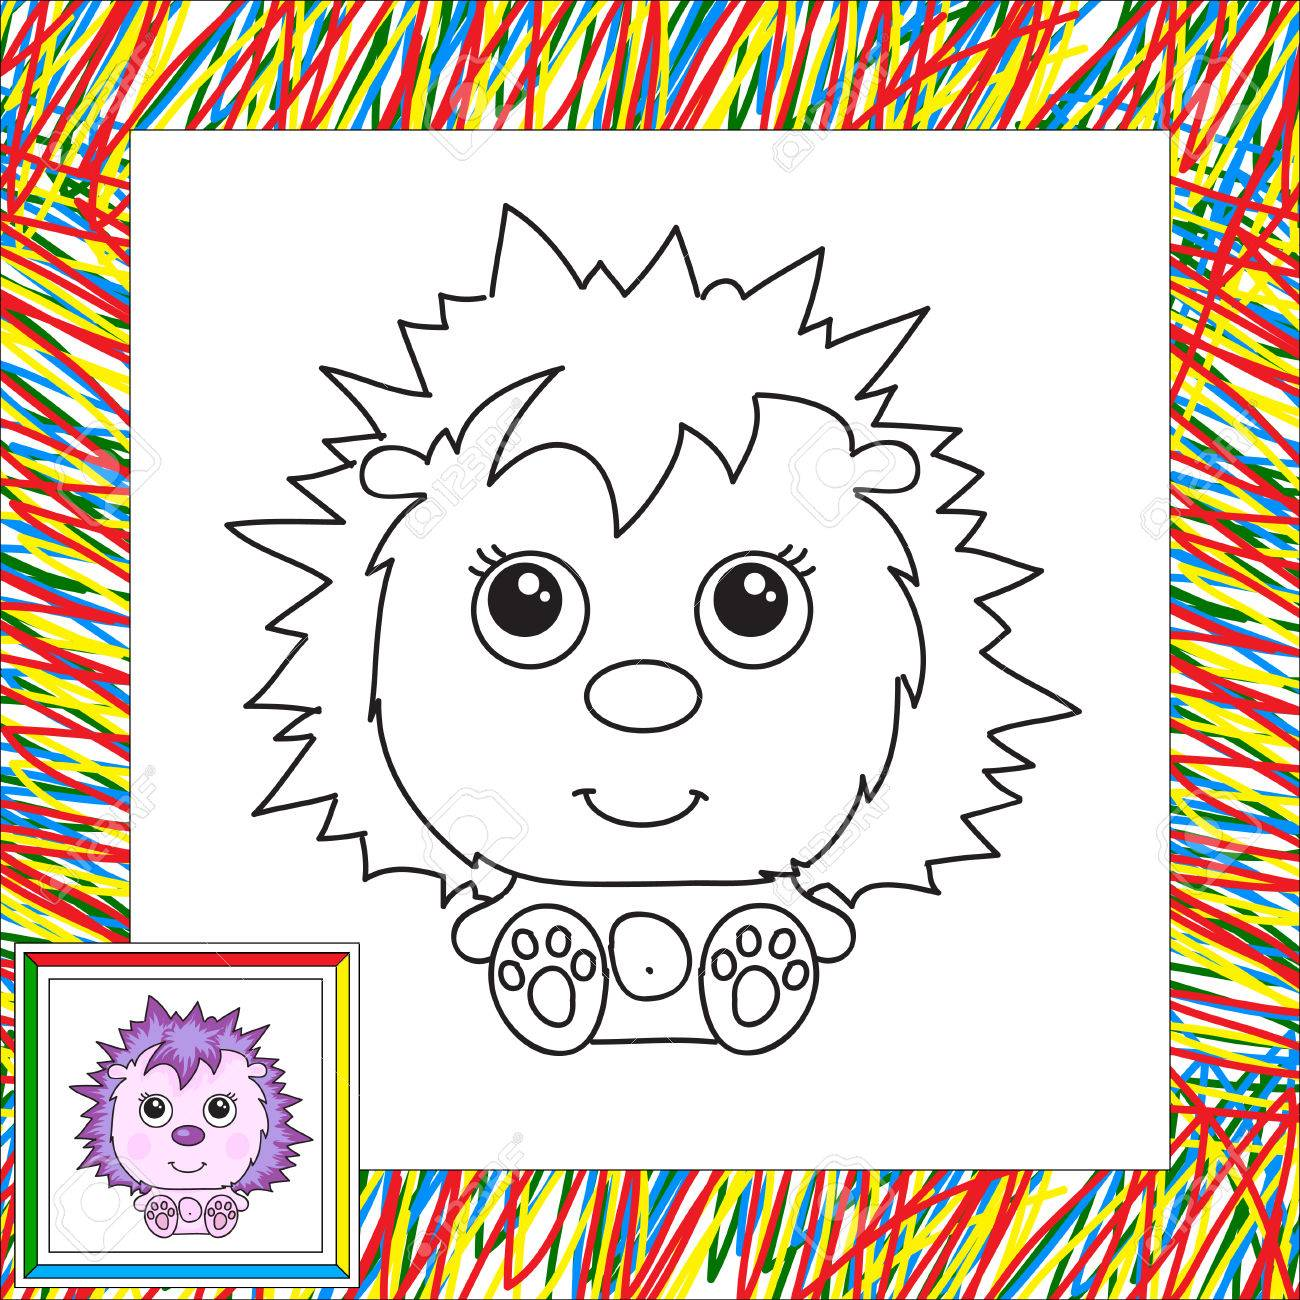 Funny And Cute Hedgehog Vector Illustration For Children Coloring